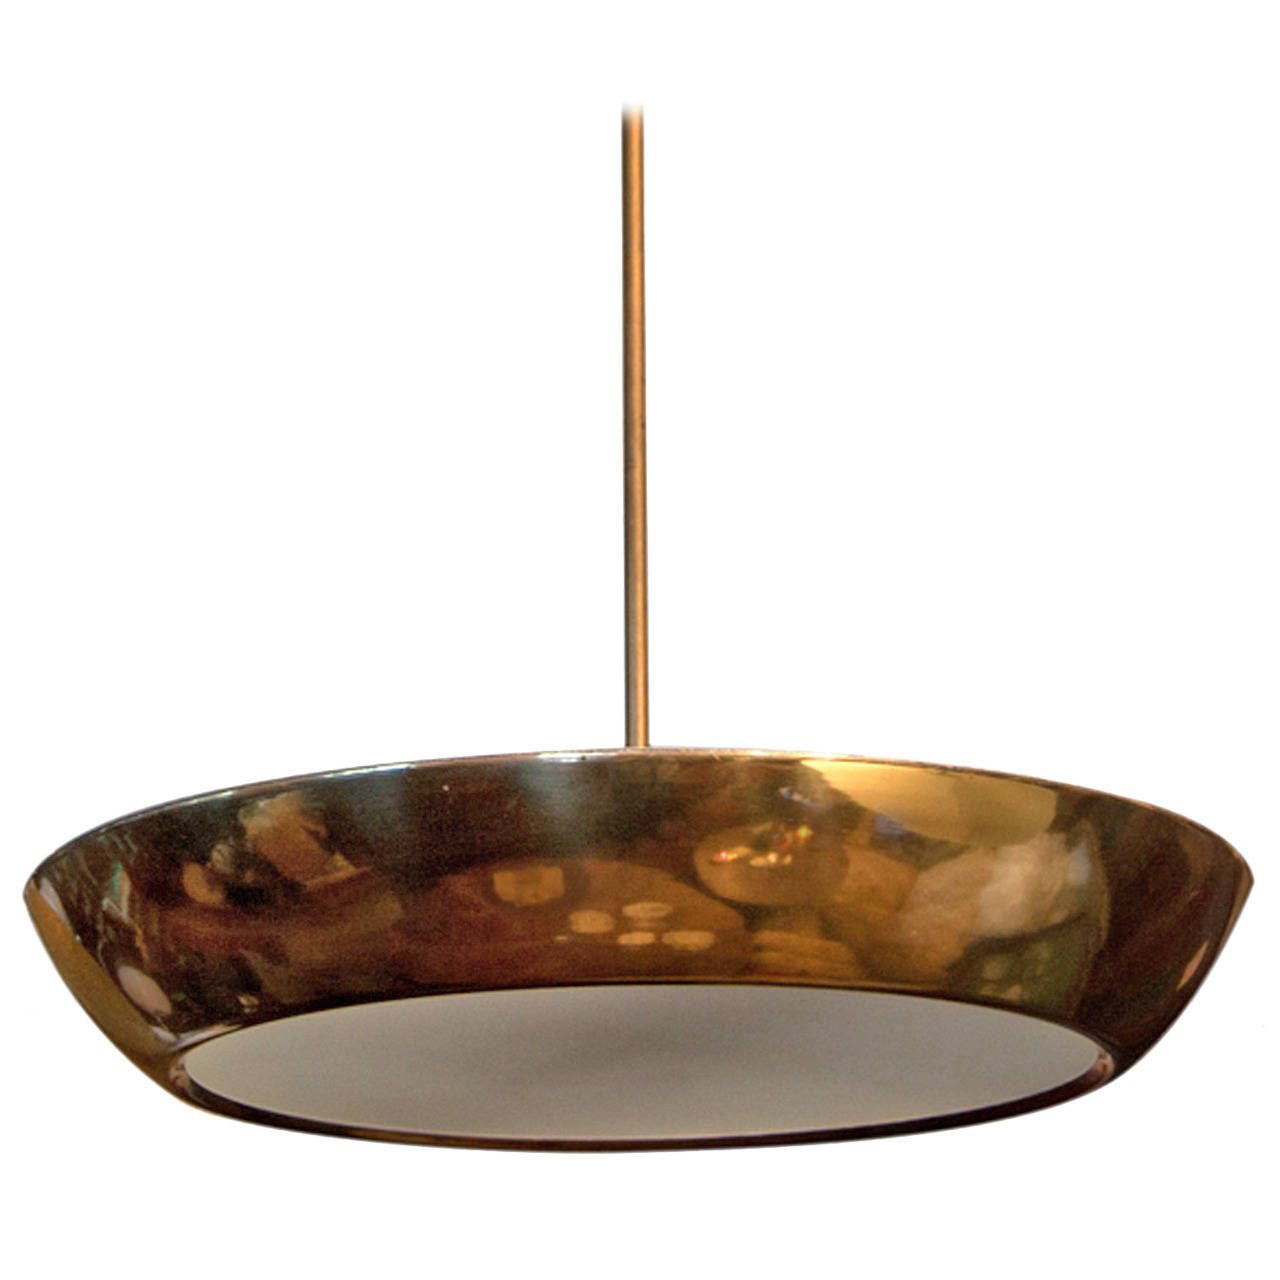 Large Bauhaus Functionalism Copper Pendant by Franta Anyz for Napako, 1930's  https://www.1stdibs.com/furniture/lighting/chandeliers-pendant-lights/large-bauhaus-functionalism-copper-pendant-franta-anyz-napako/id-f_2580632/